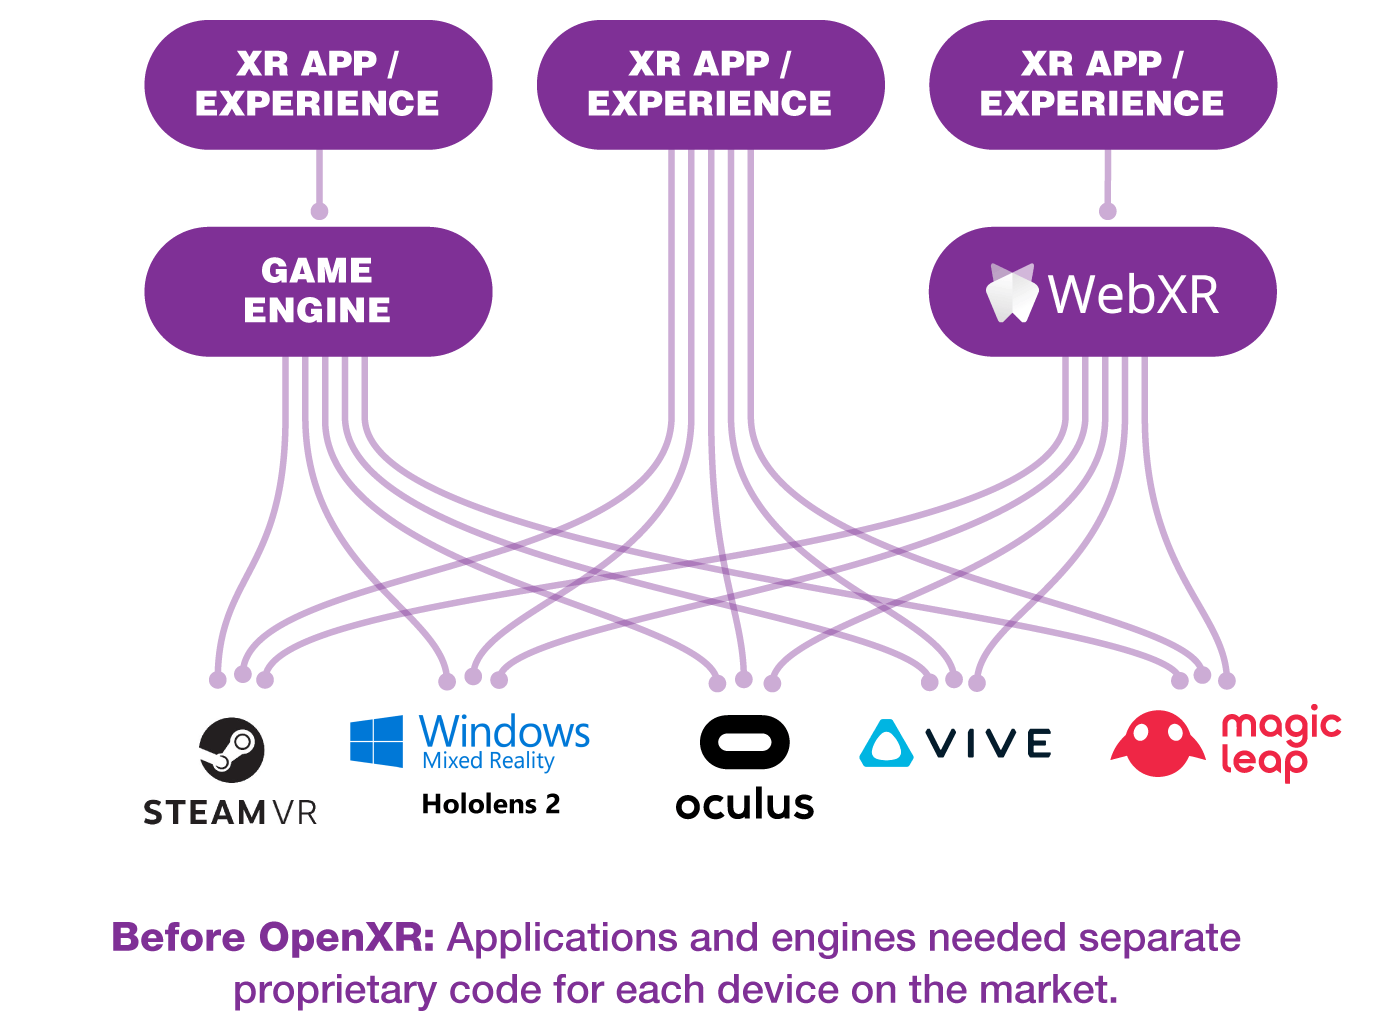 Graphic showing fragmentation before OpenXR